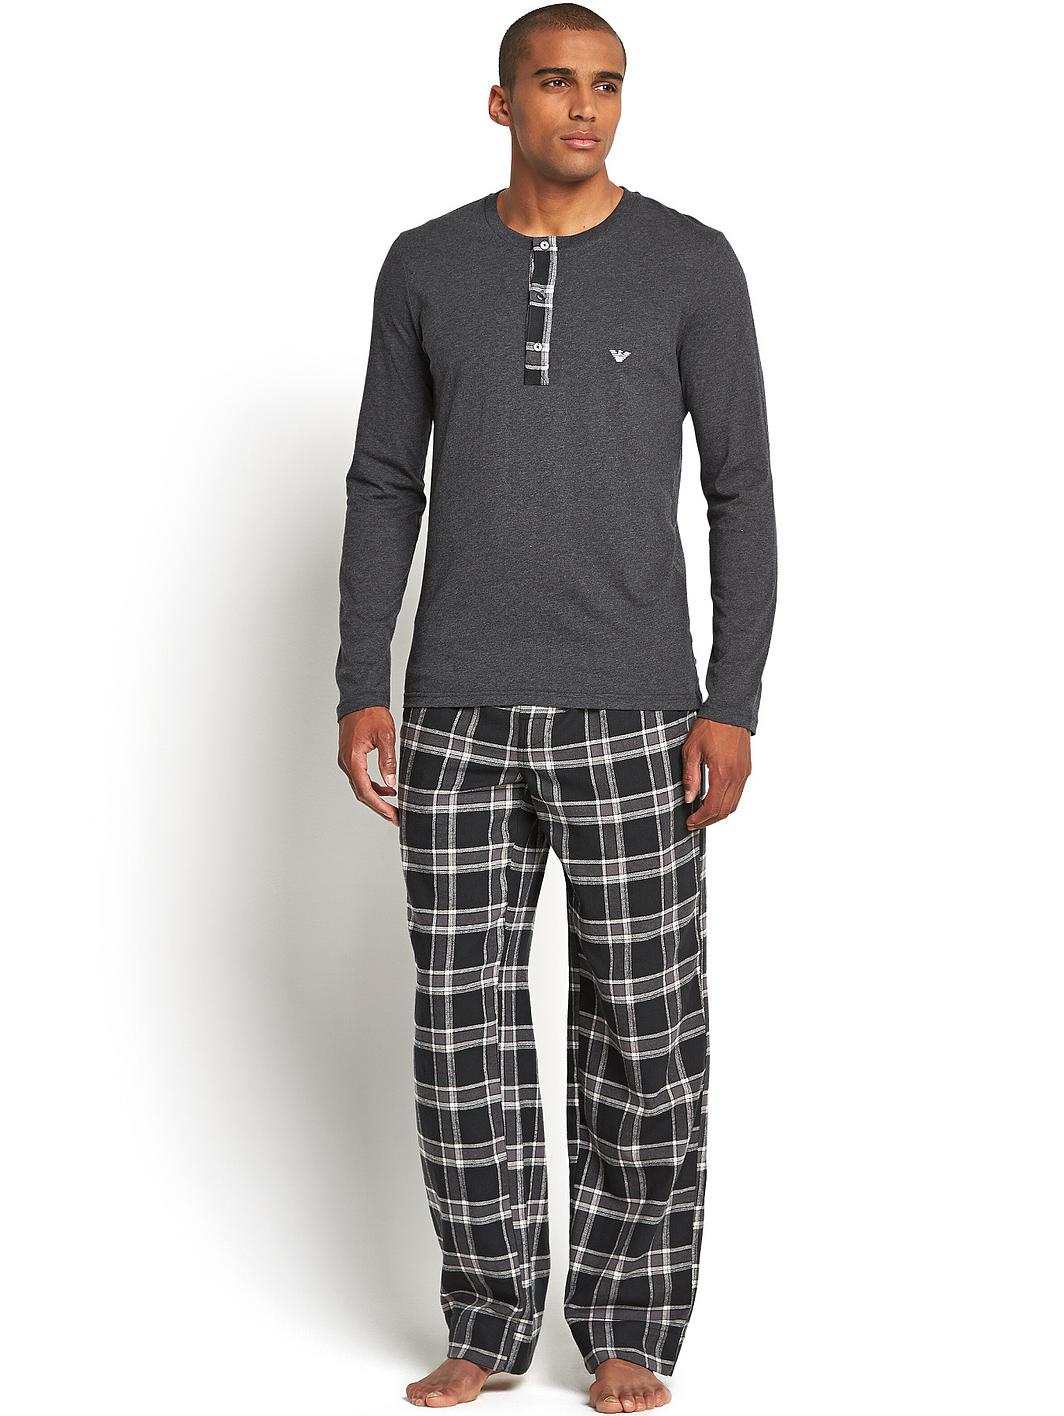 Whether you're lounging or sleeping, make sure you do it in comfort with our collection of men's pyjamas and loungewear, dressing gowns and slippers, pyjama sets and more.